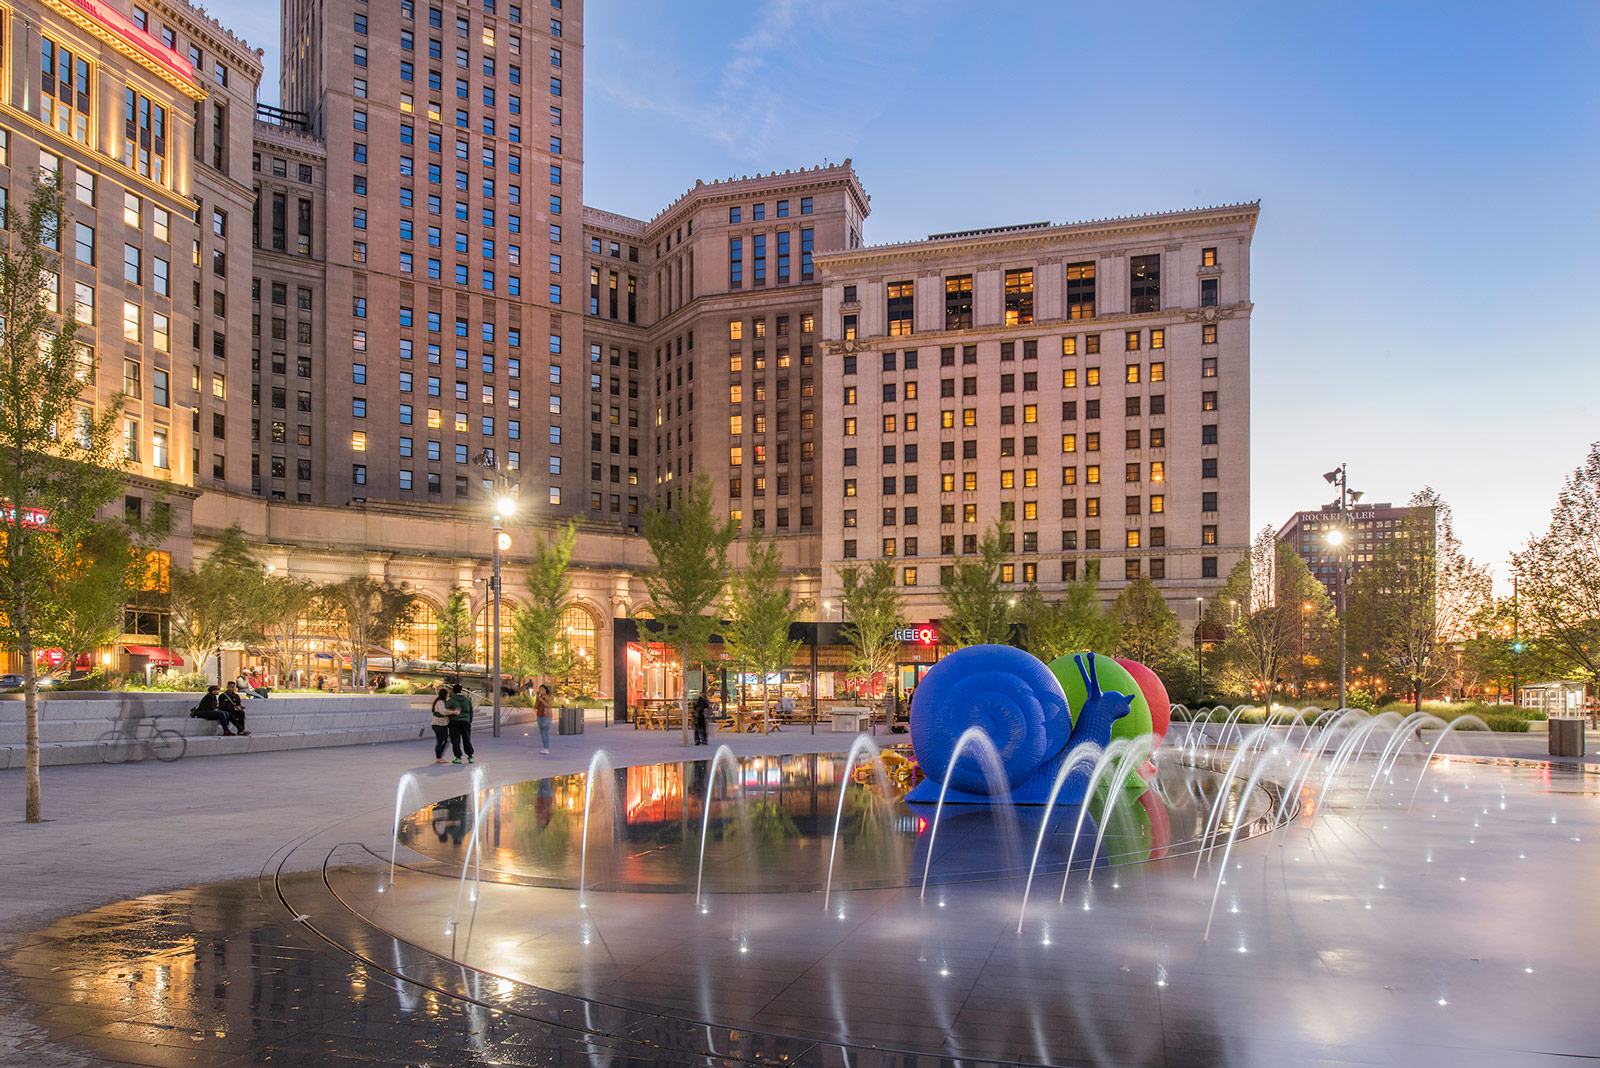 City of Cleveland seeking zoning code for walkable